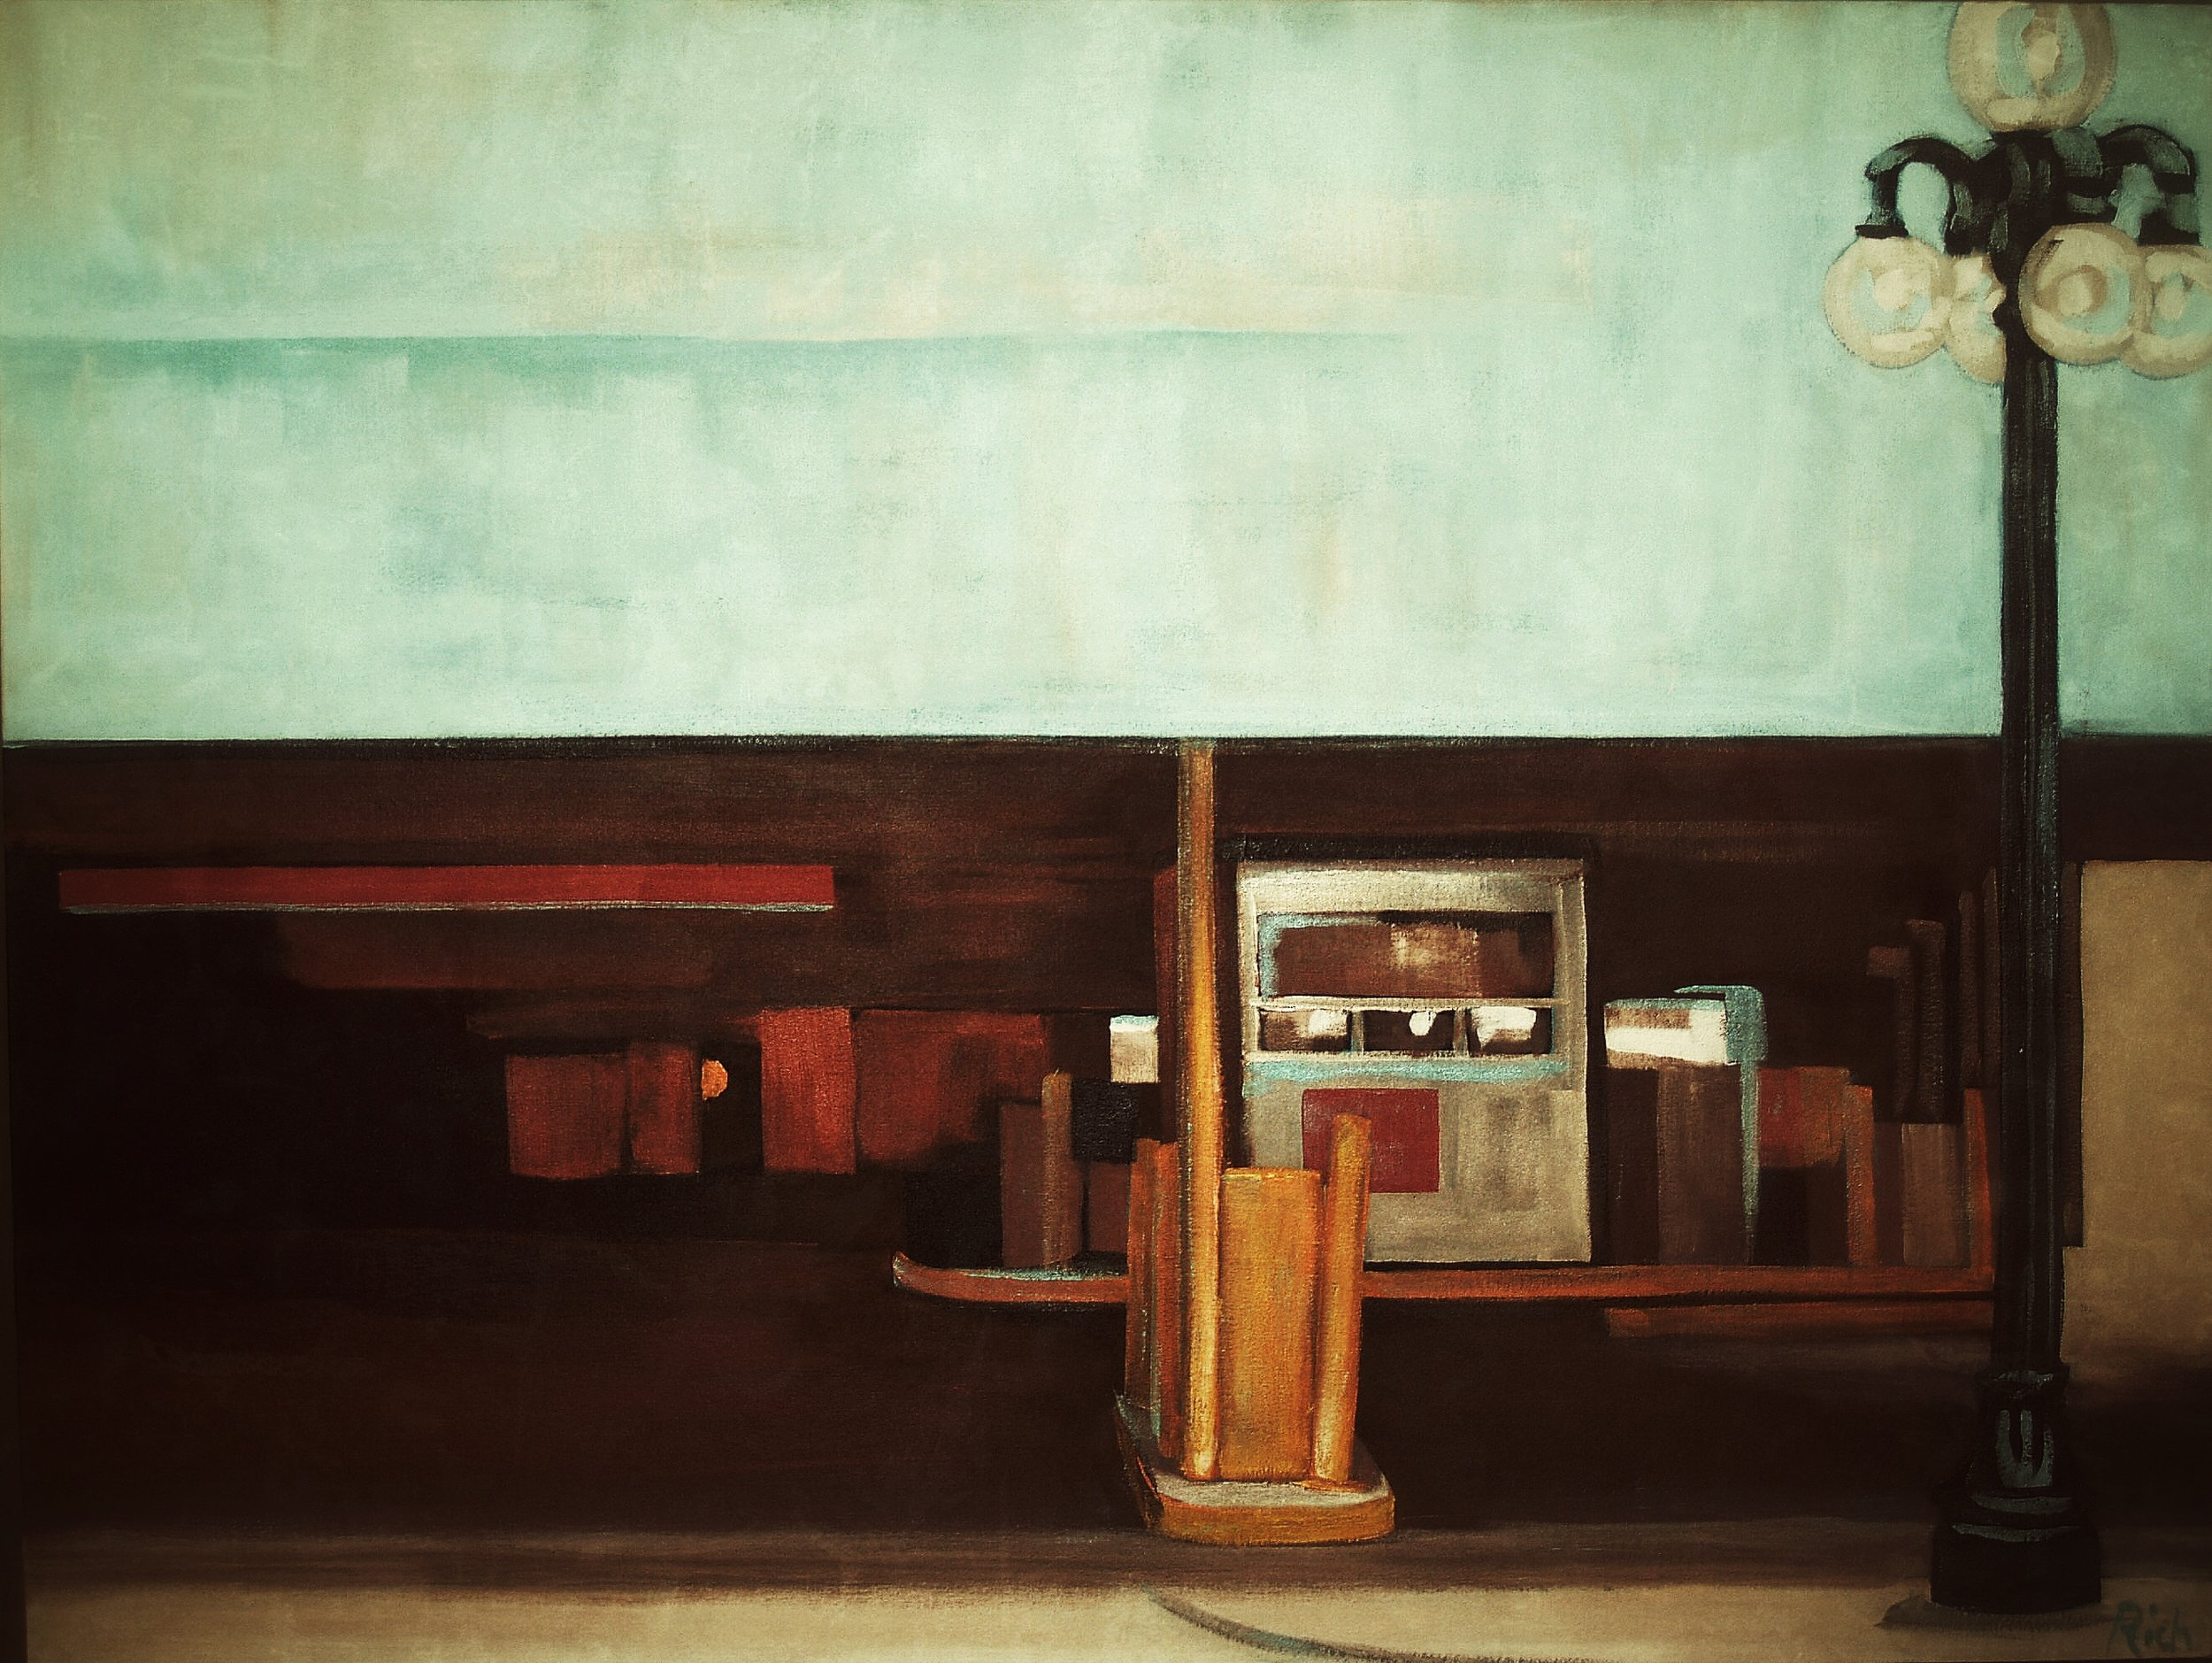 Retro parkade  Acrylic on canvas 36x24